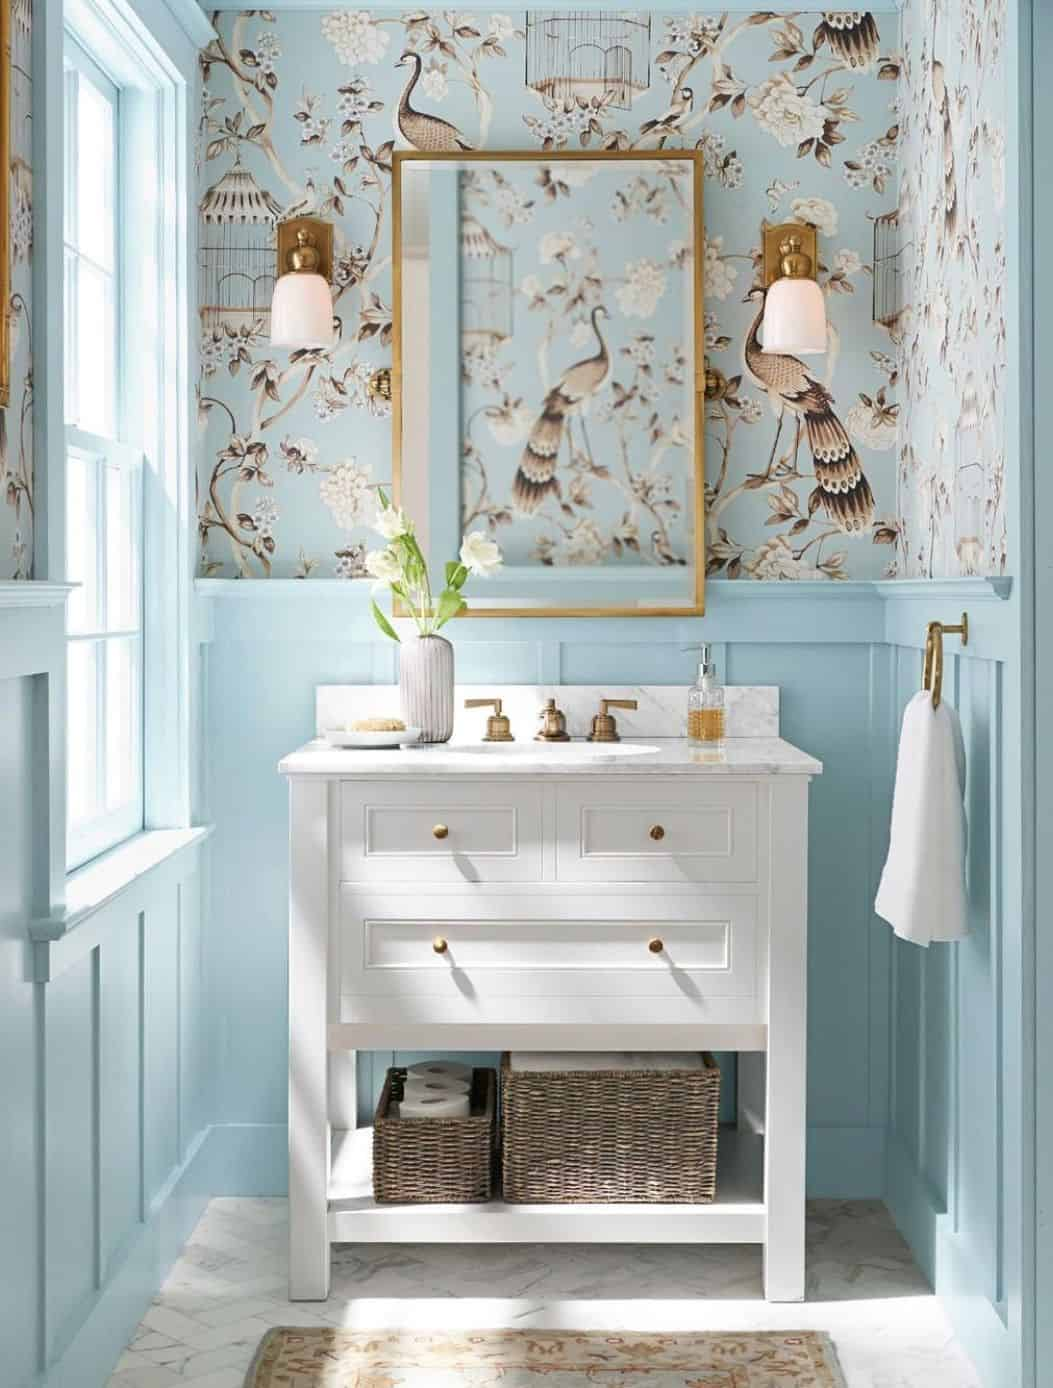 paint inspired wallpaper Bathroom wallpapers that will inspire your next home upgrade